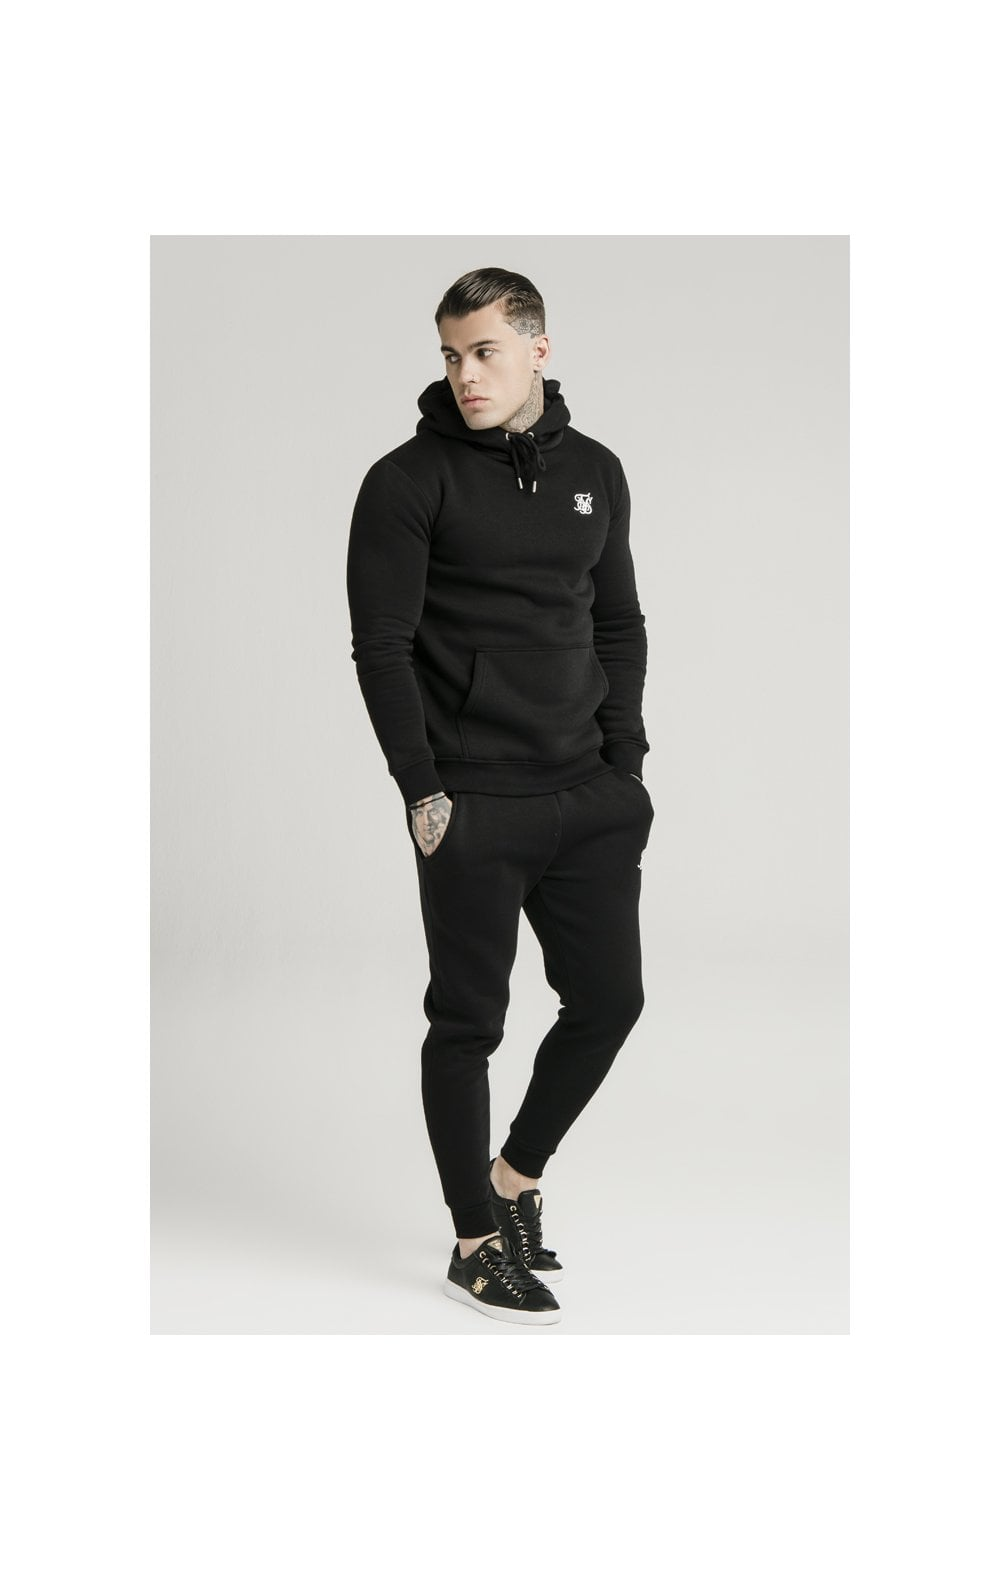 SikSilk Muscle Fit Overhead Hoodie - Black (2)